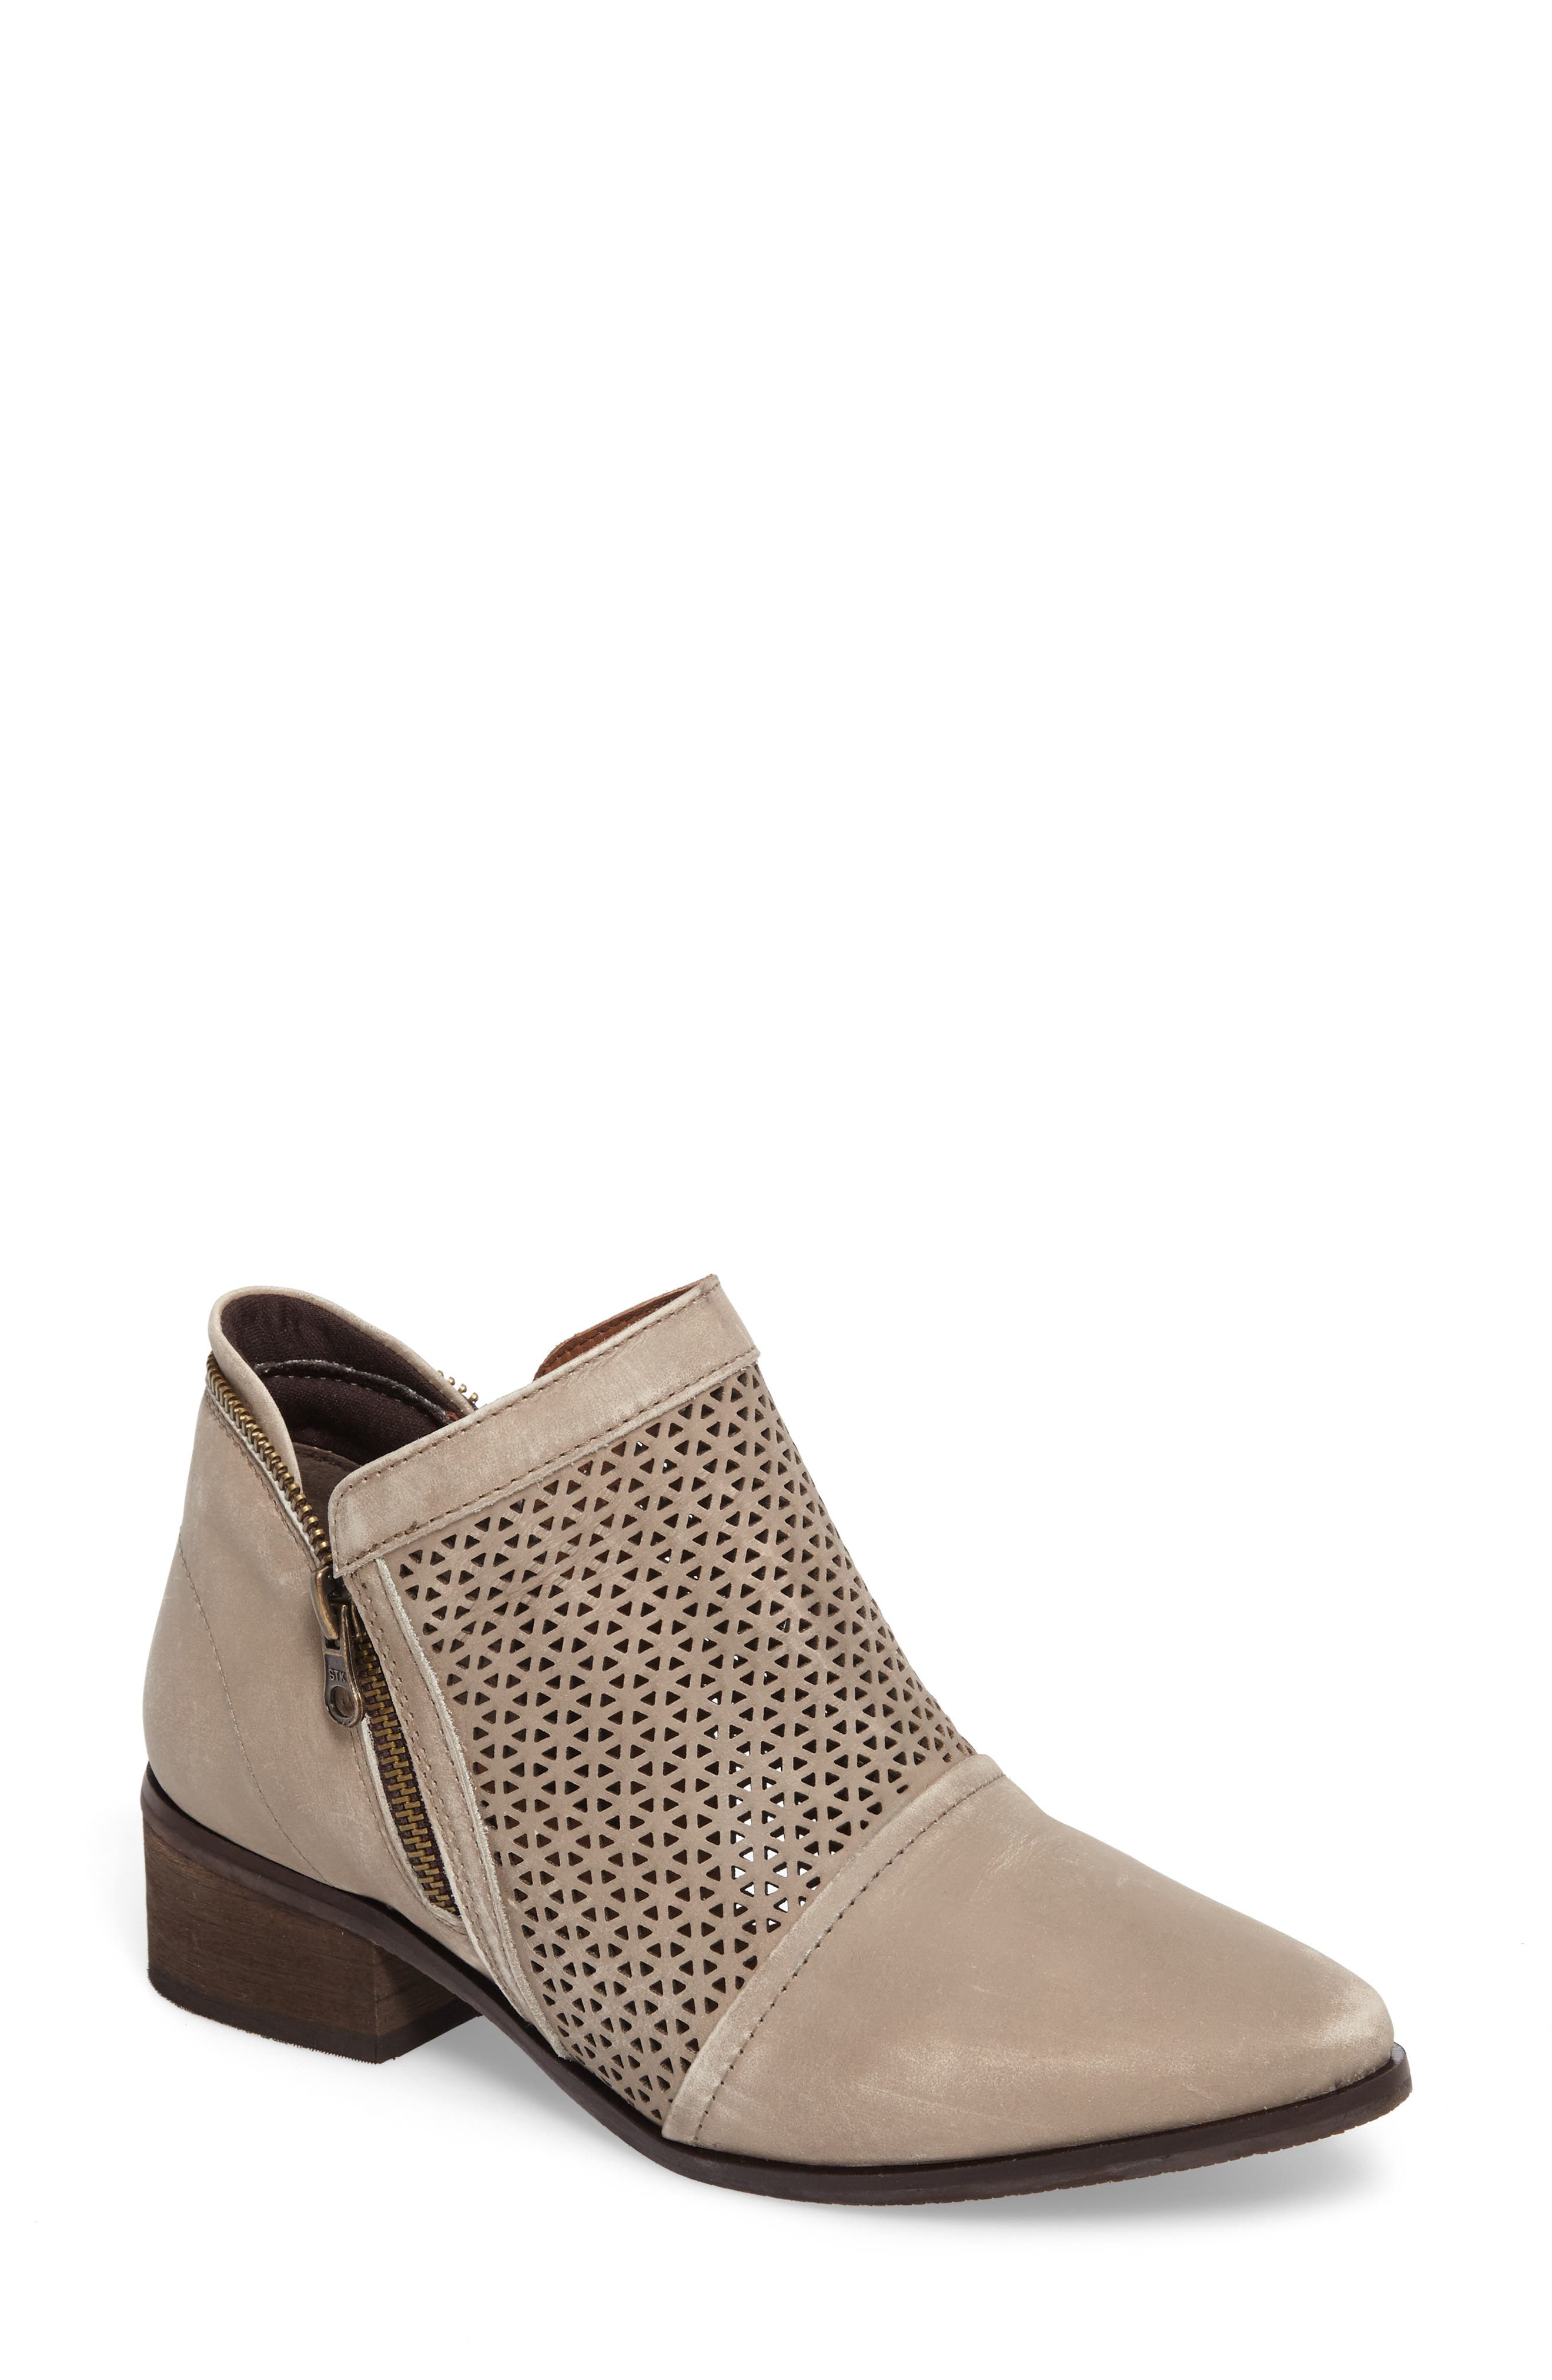 Zayna Bootie,                             Main thumbnail 1, color,                             Taupe Suede